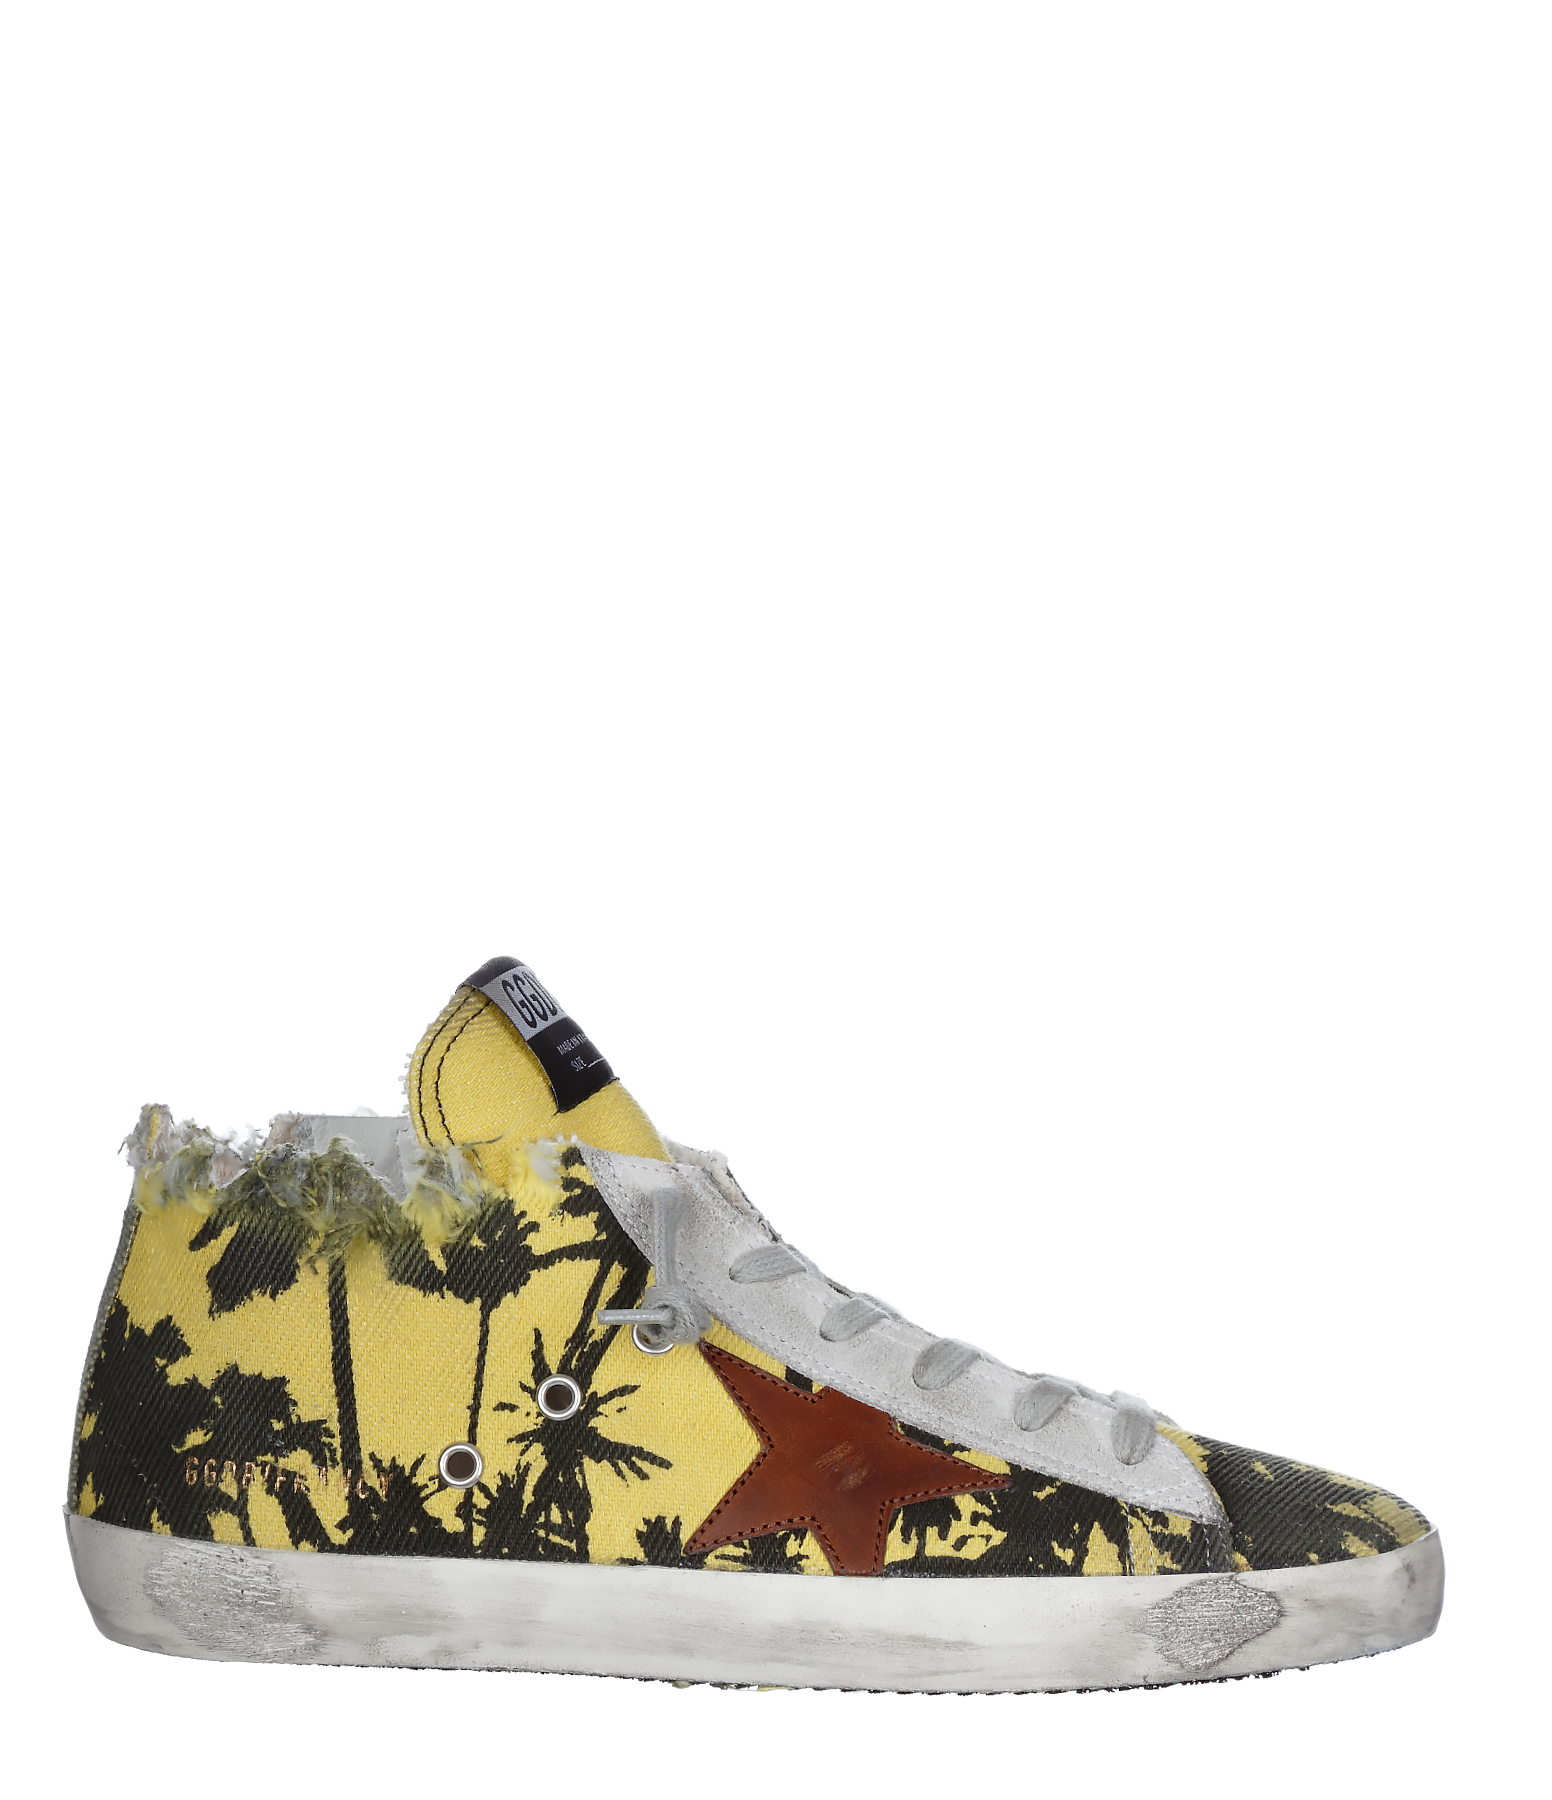 Sneakers Homme Francy Cuir Coton Palm Printed